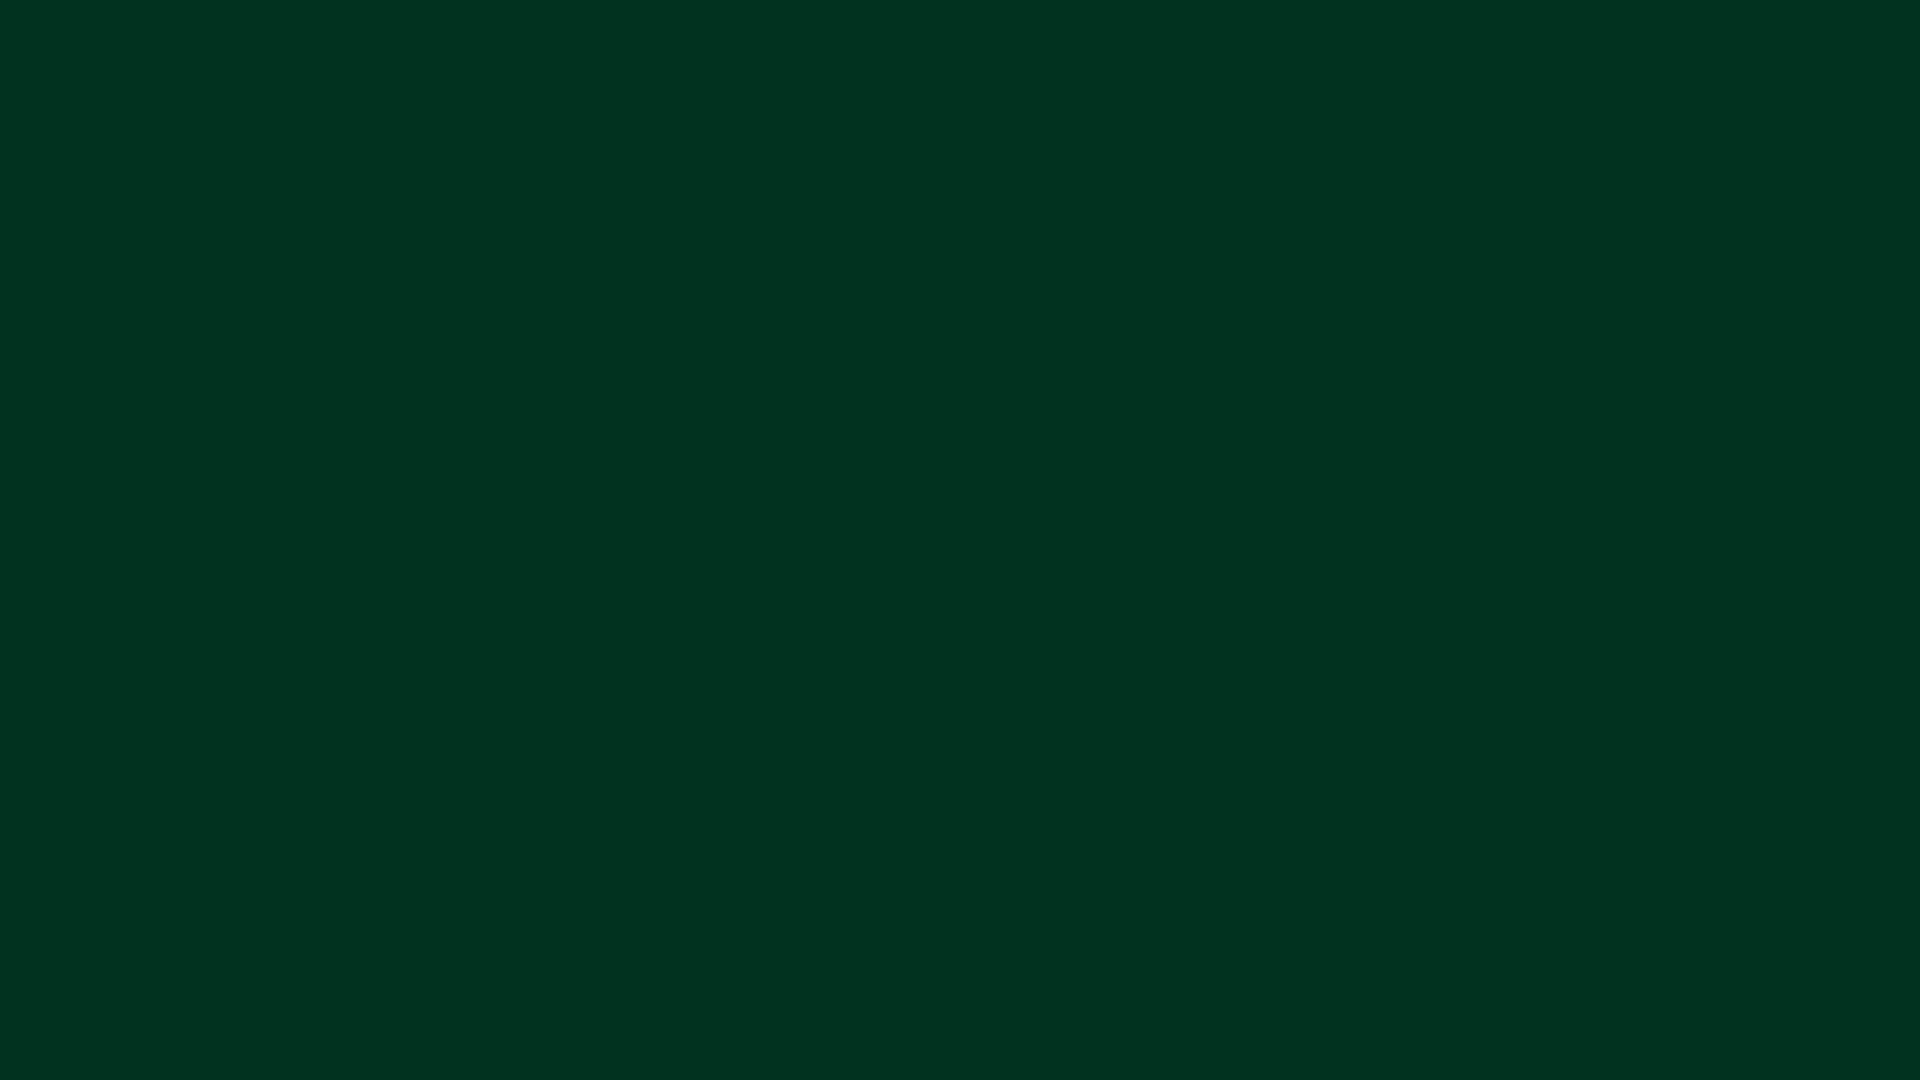 Royalty free image of dark green color stripes abstract background